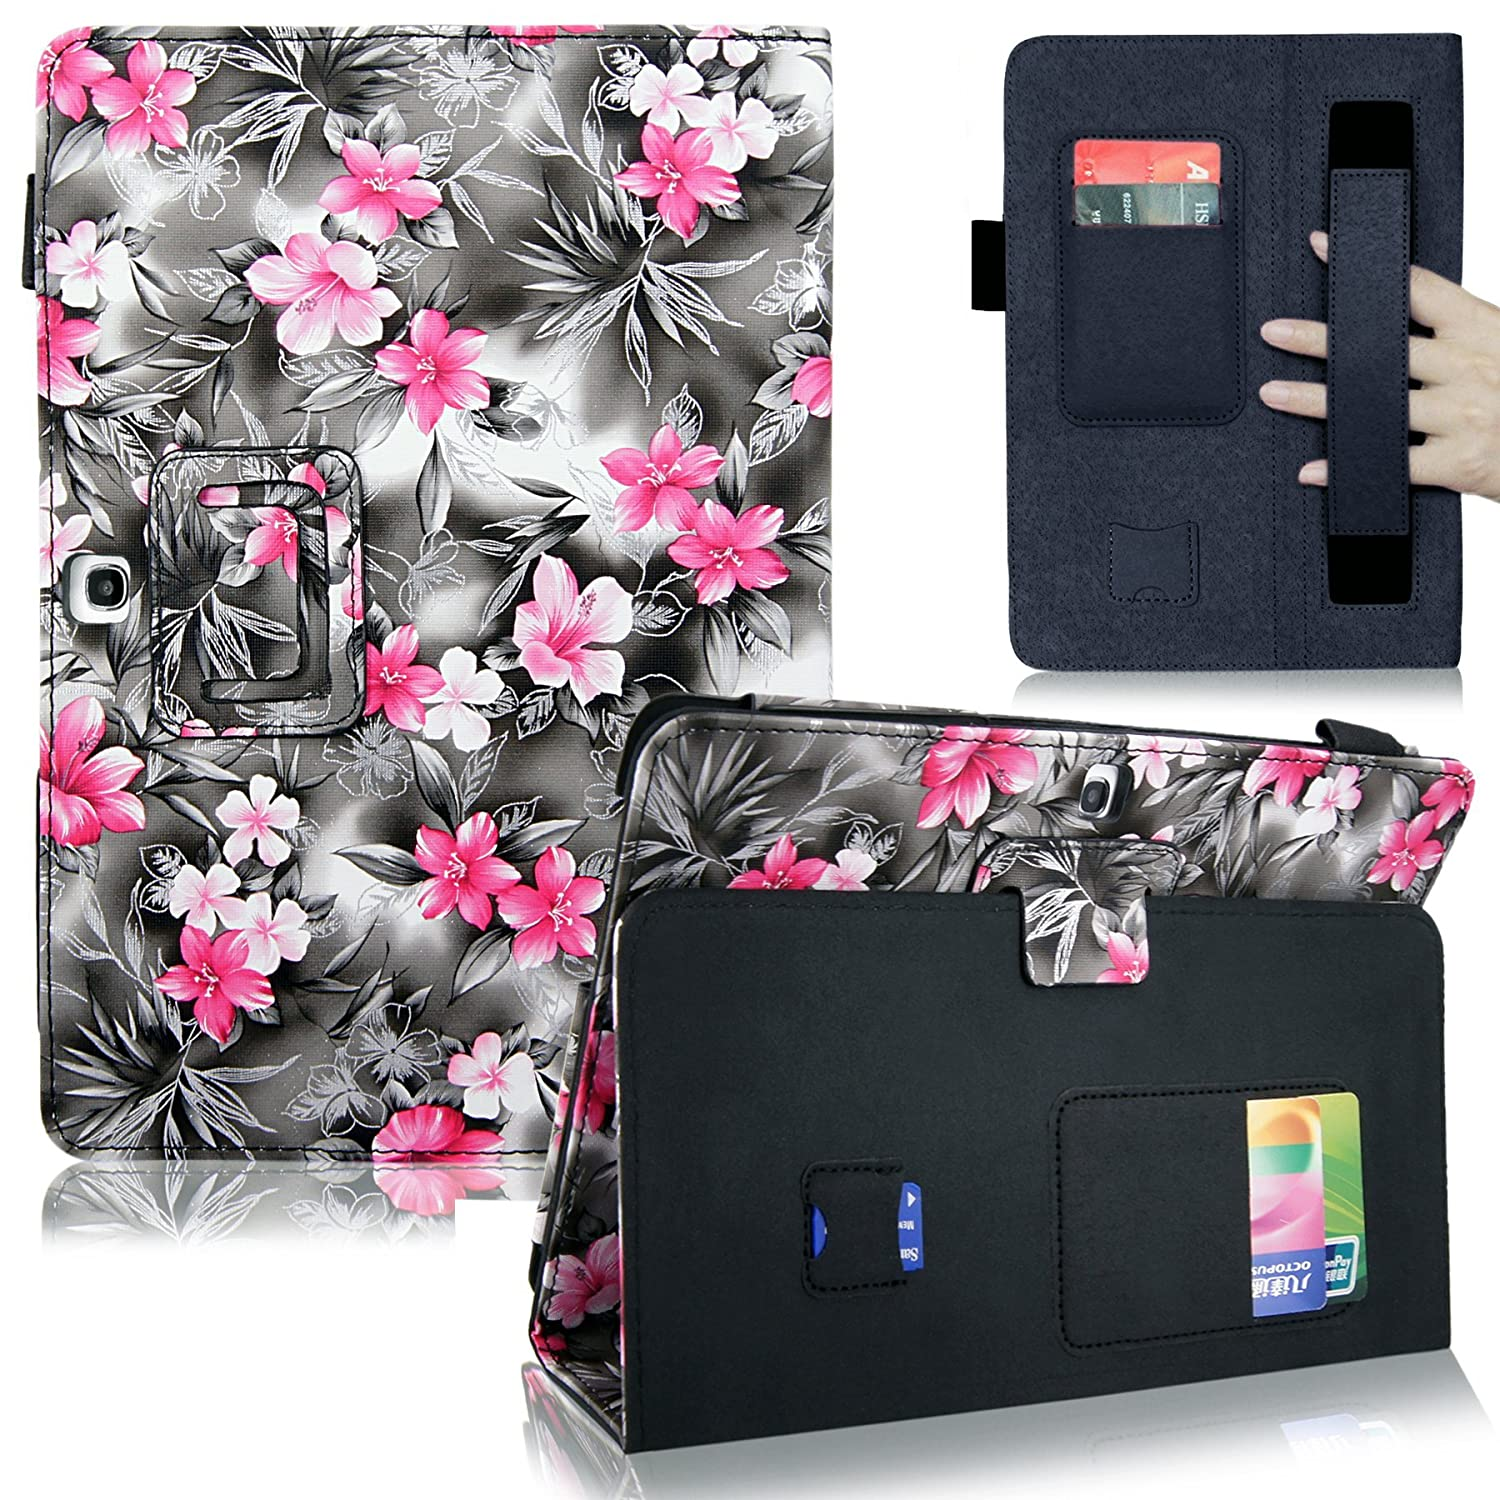 Cellularvilla Case for Samsung Galaxy tab 3 7 8 Gen Pu Leather Elastic Hand Strap Flip Folio Stand Case Cover + Stylus Touch Pen